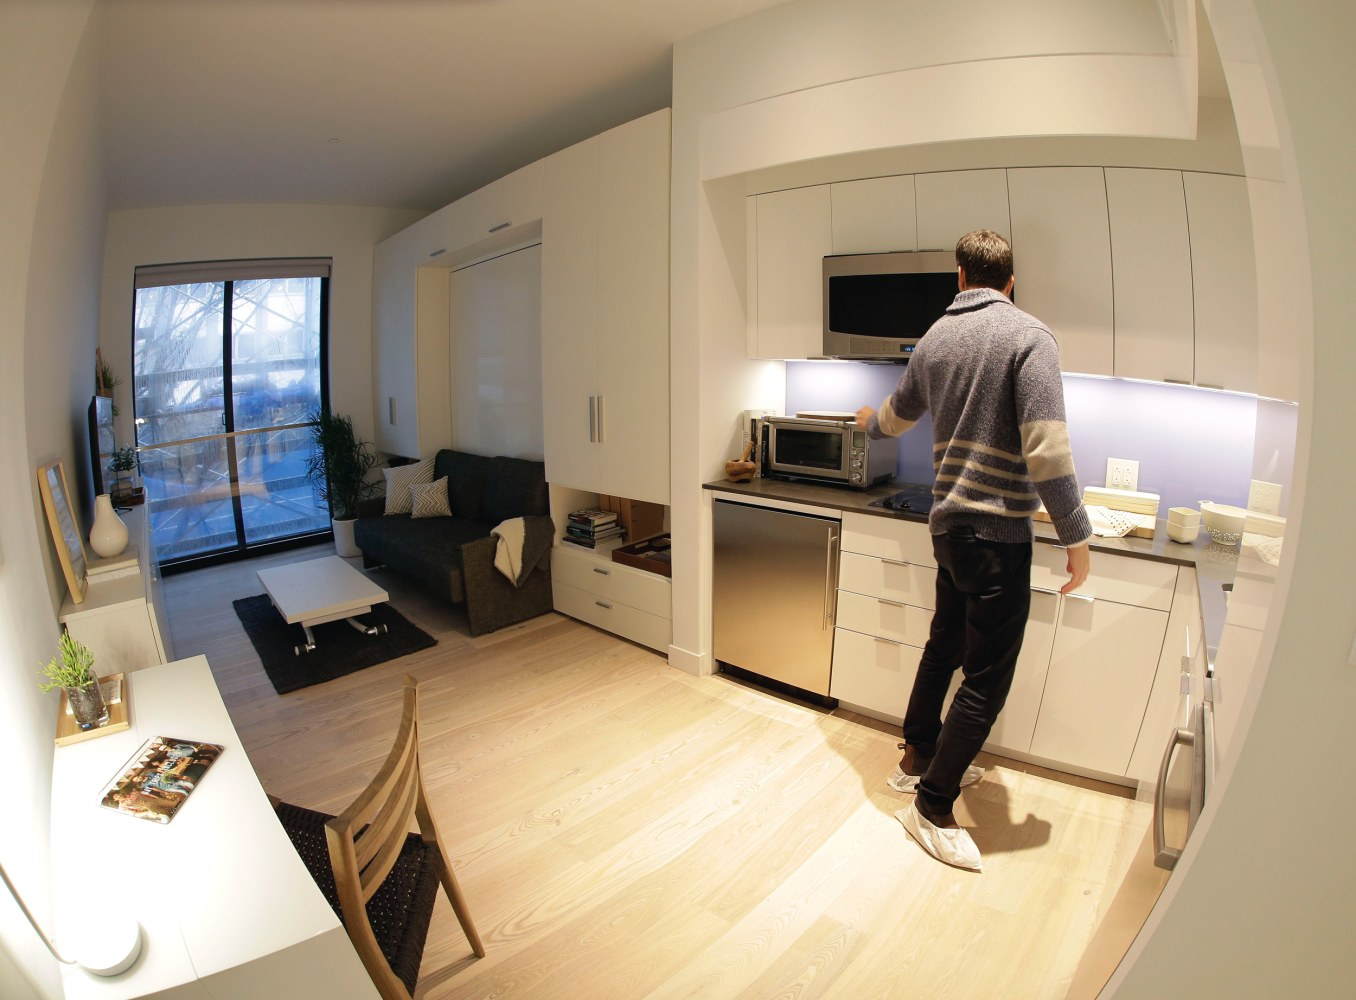 Affordable or 39 offensive 39 nyc moves to ease rules on tiny for Real estate nyc apartments